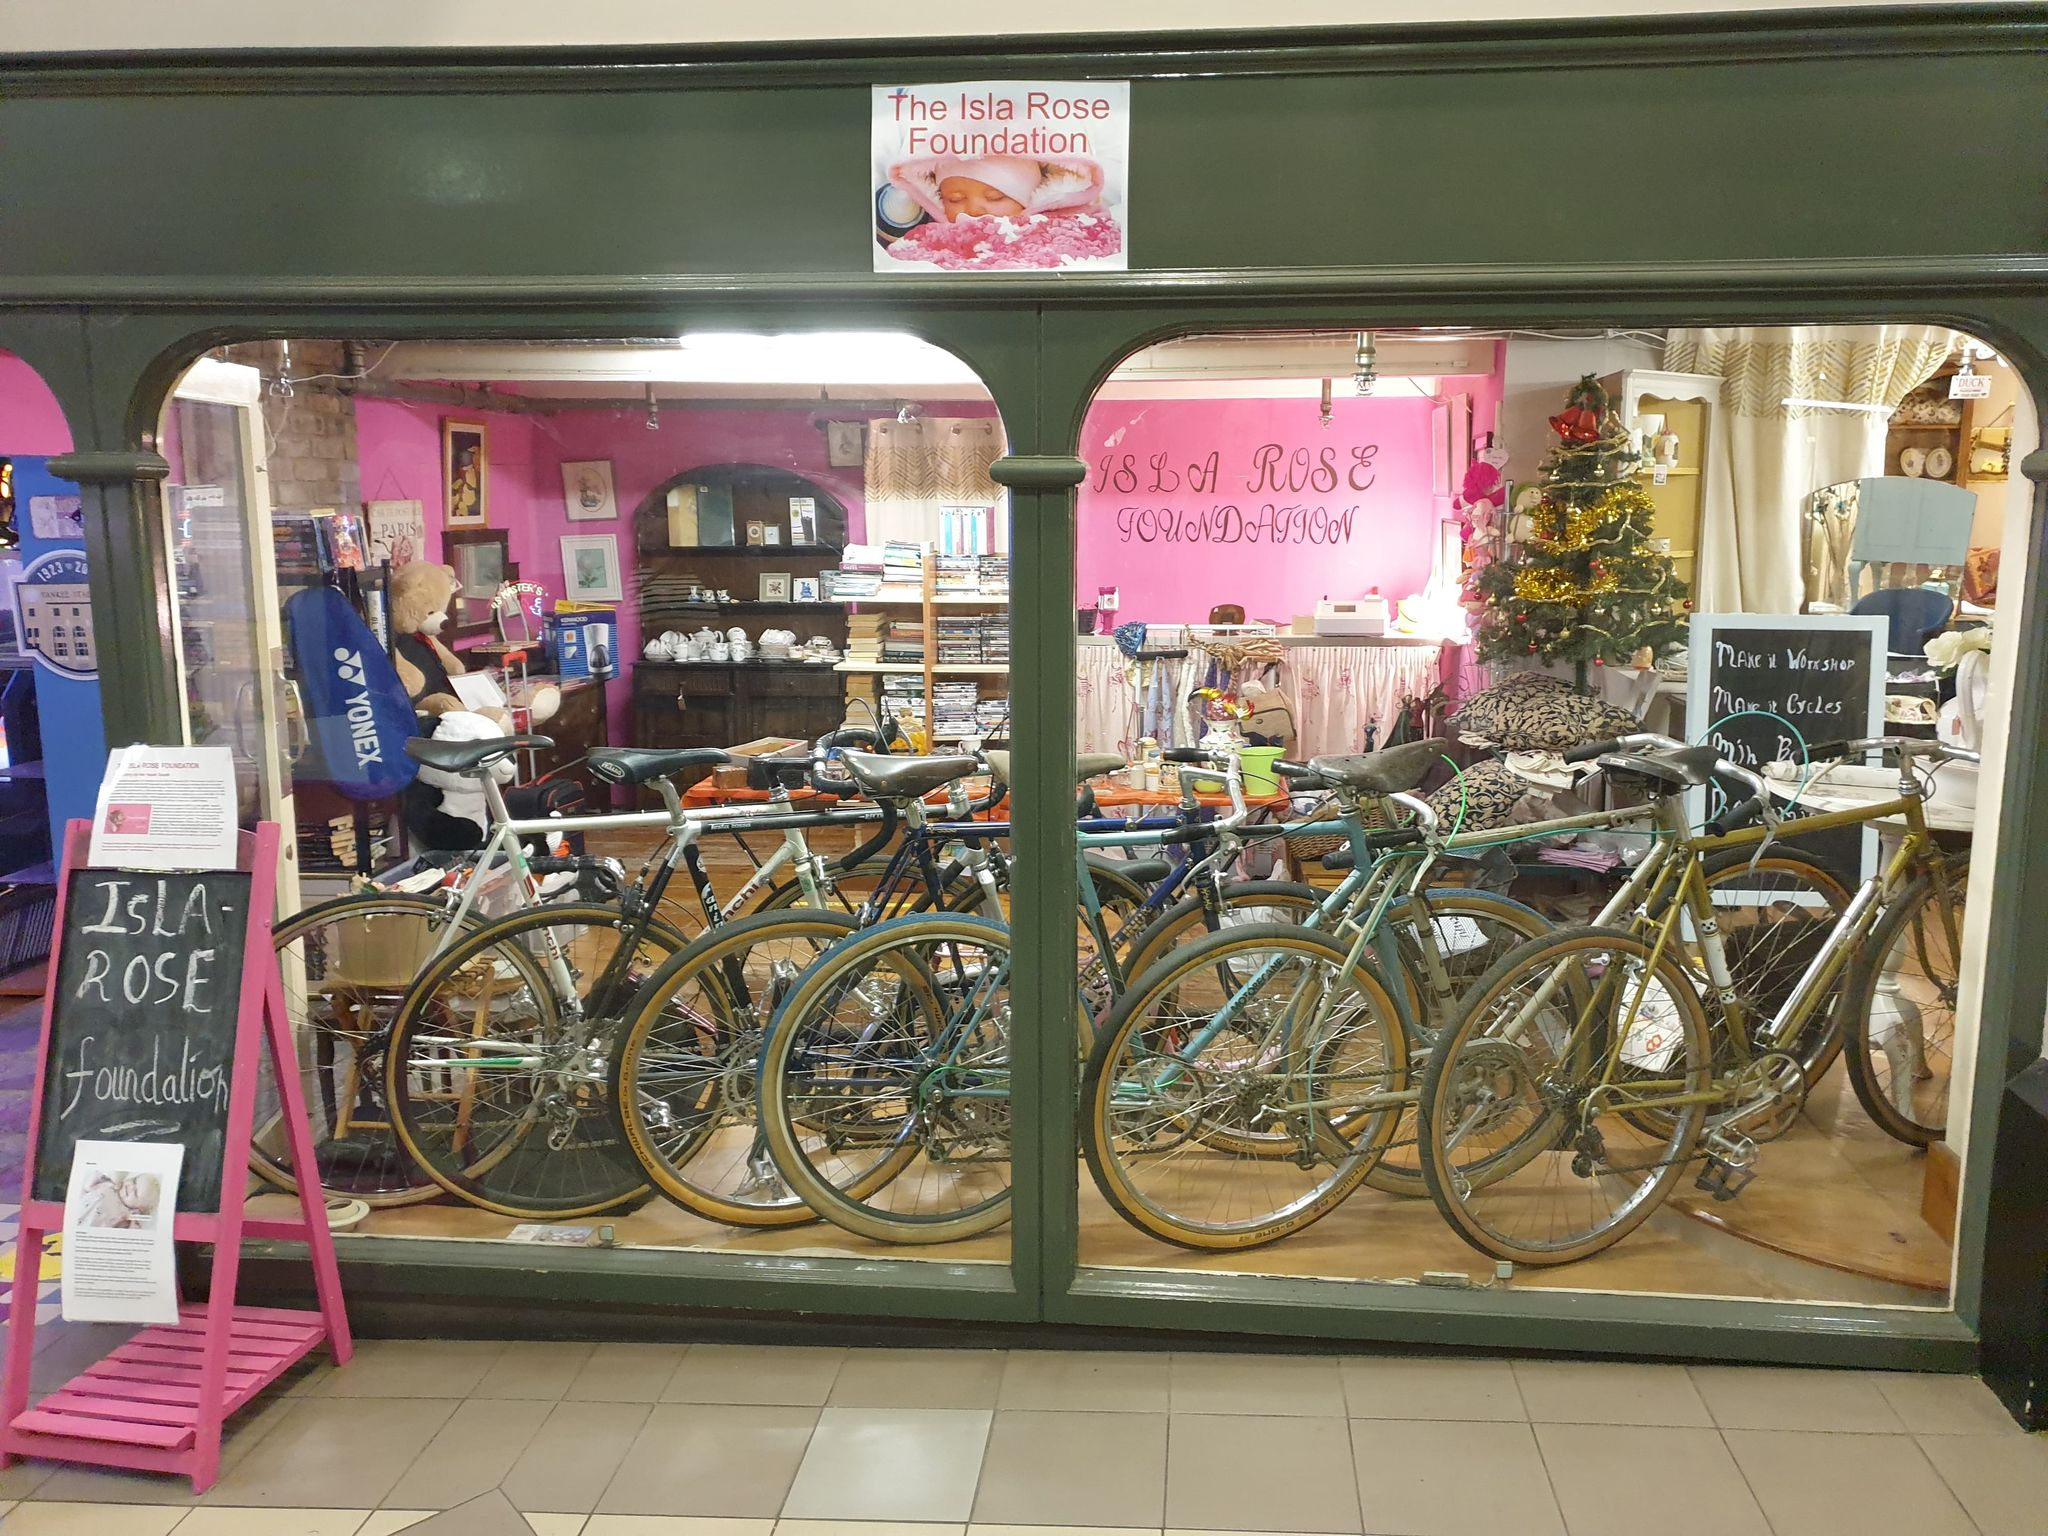 The new Bohemia shop, incorporating The Isla Rose Foundation, has opened in Cambridge Walks in Southport town centre